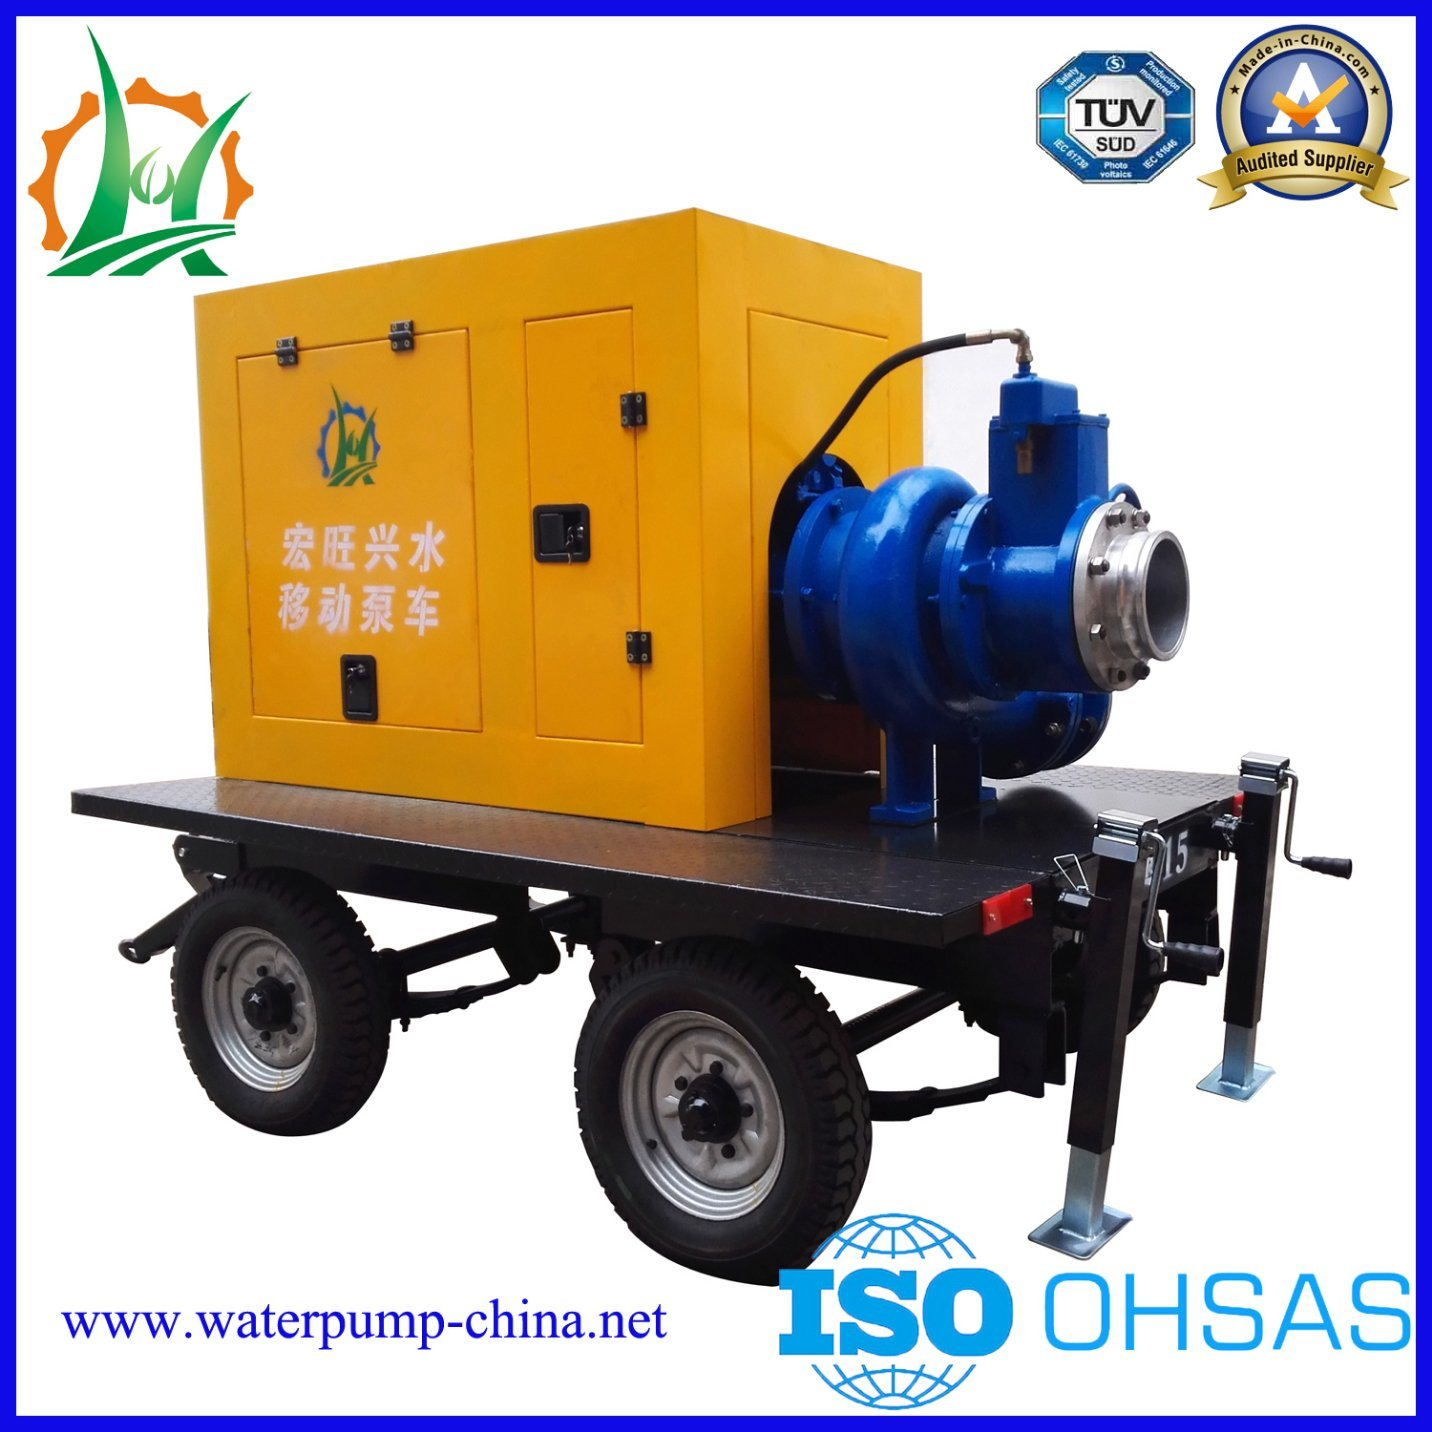 8 Inch Portable Self Priming Trailer Diesel Pump Set pictures & photos